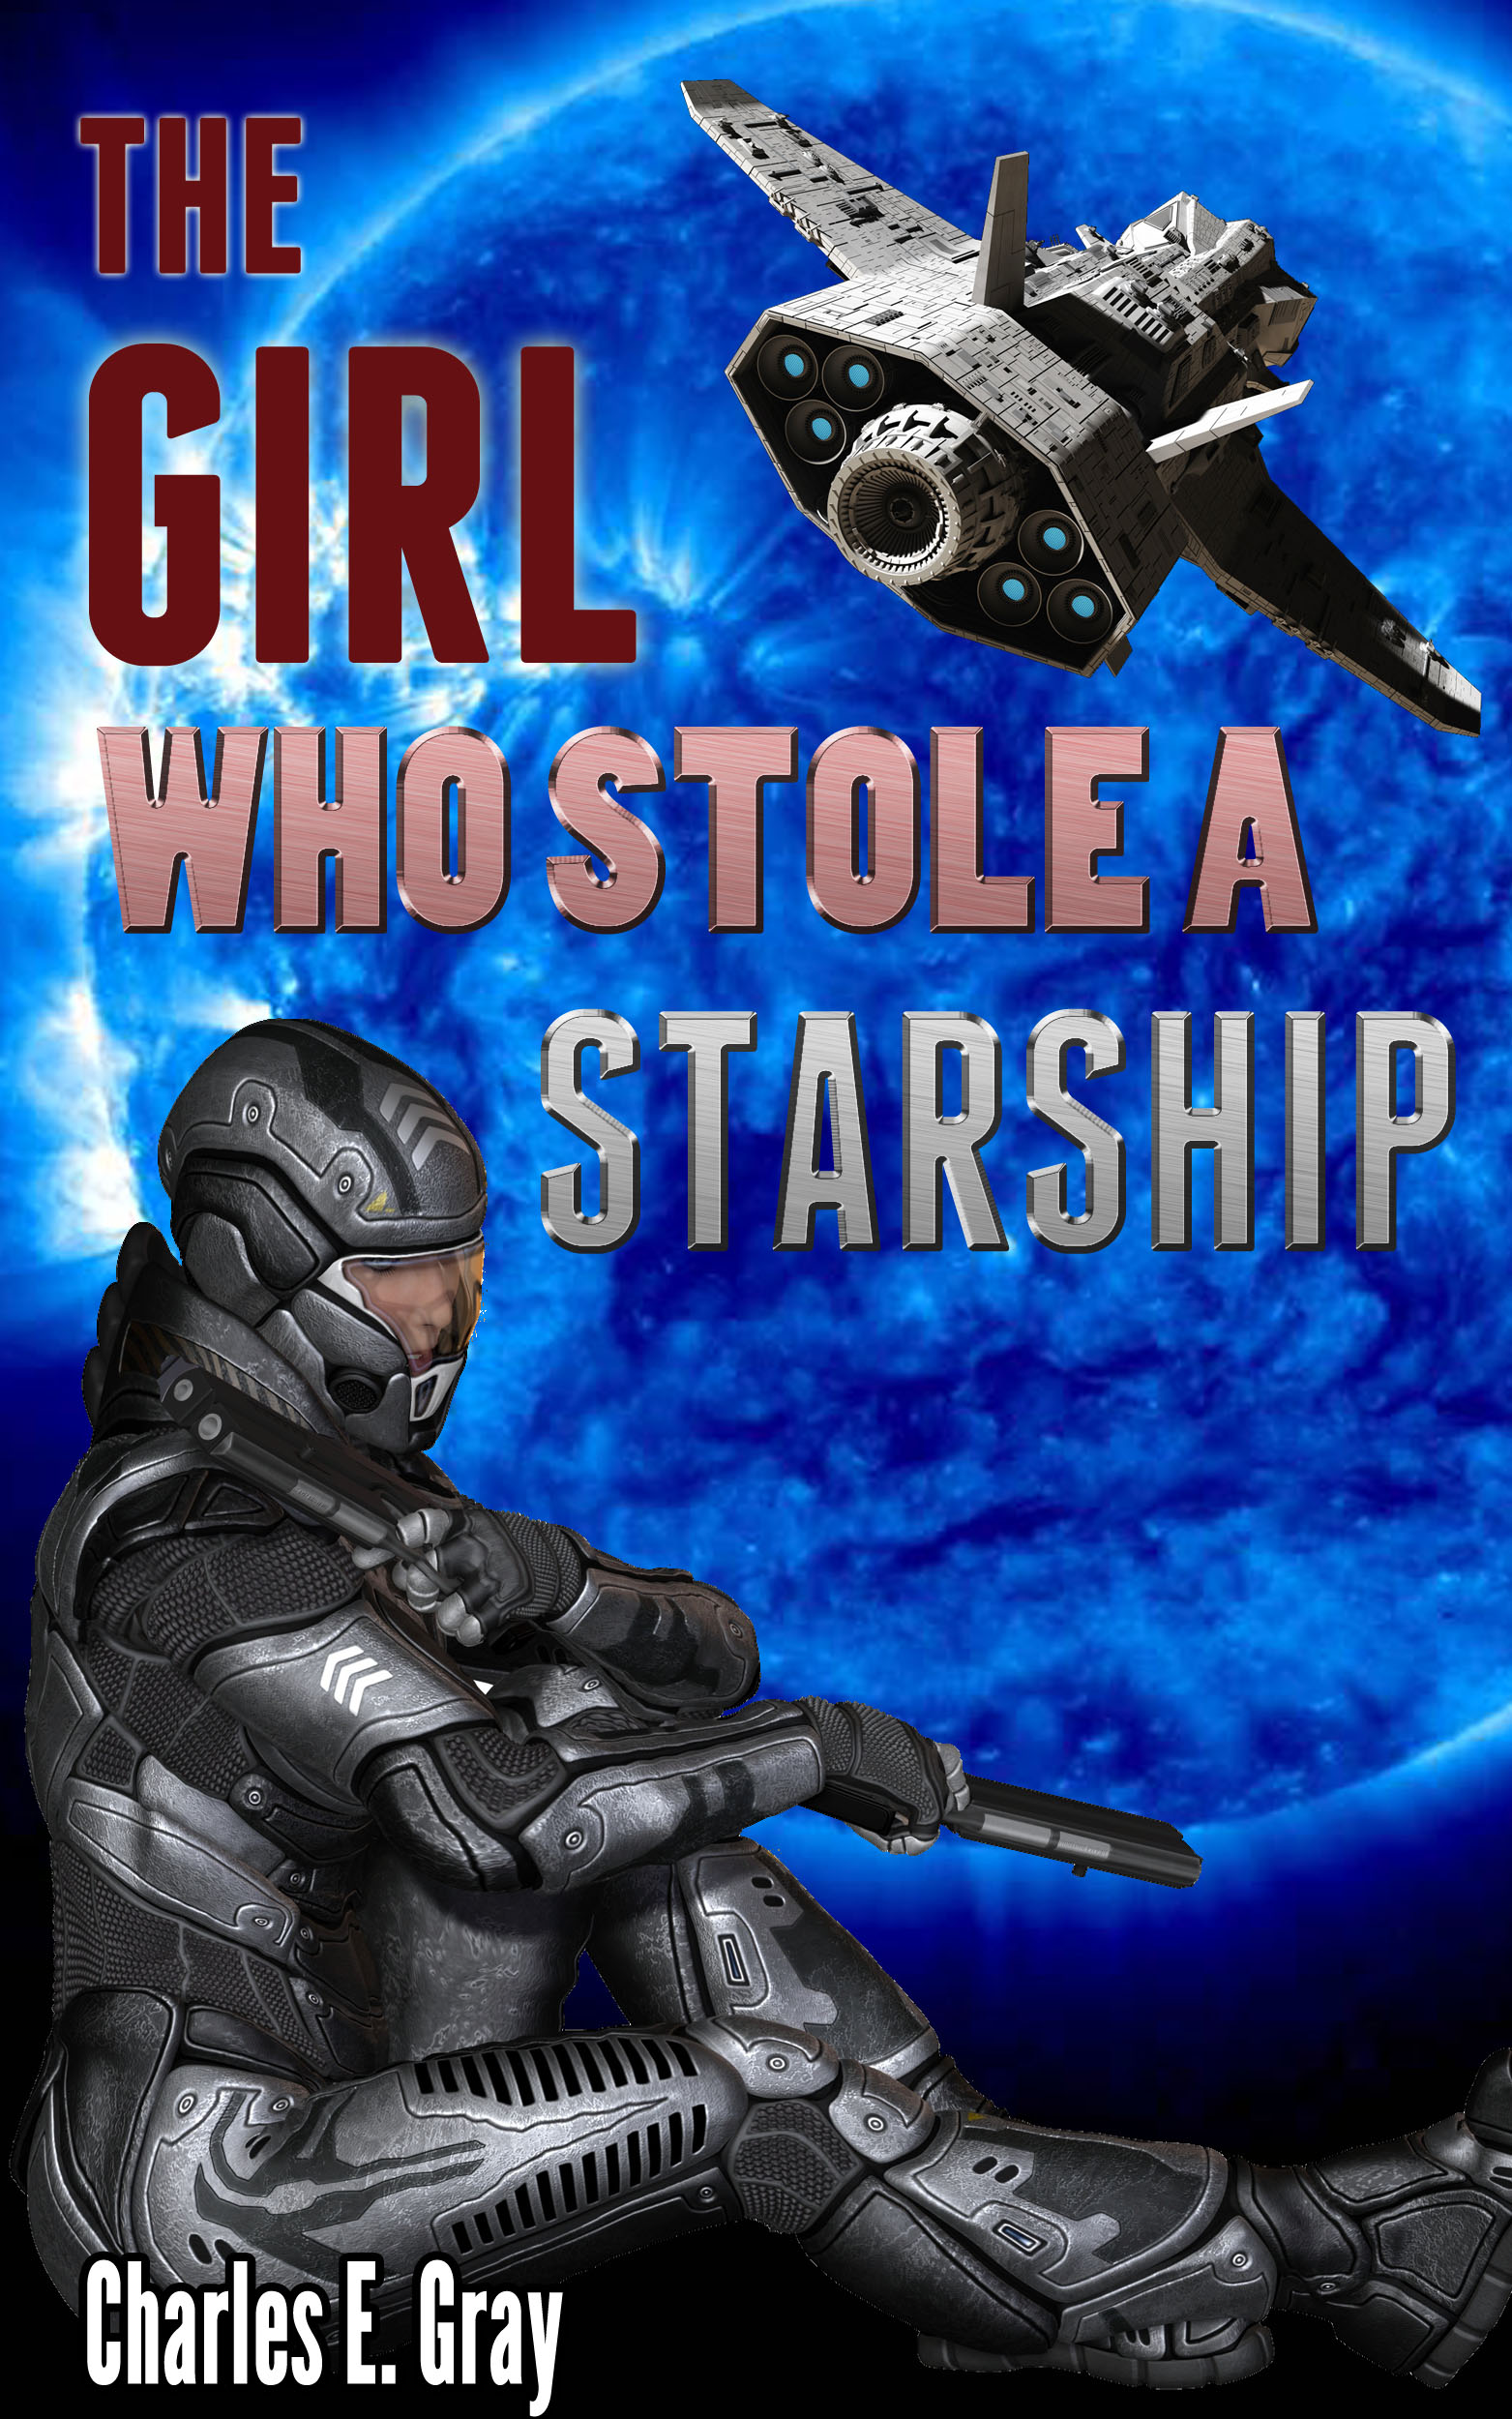 the girl who stole a battleship